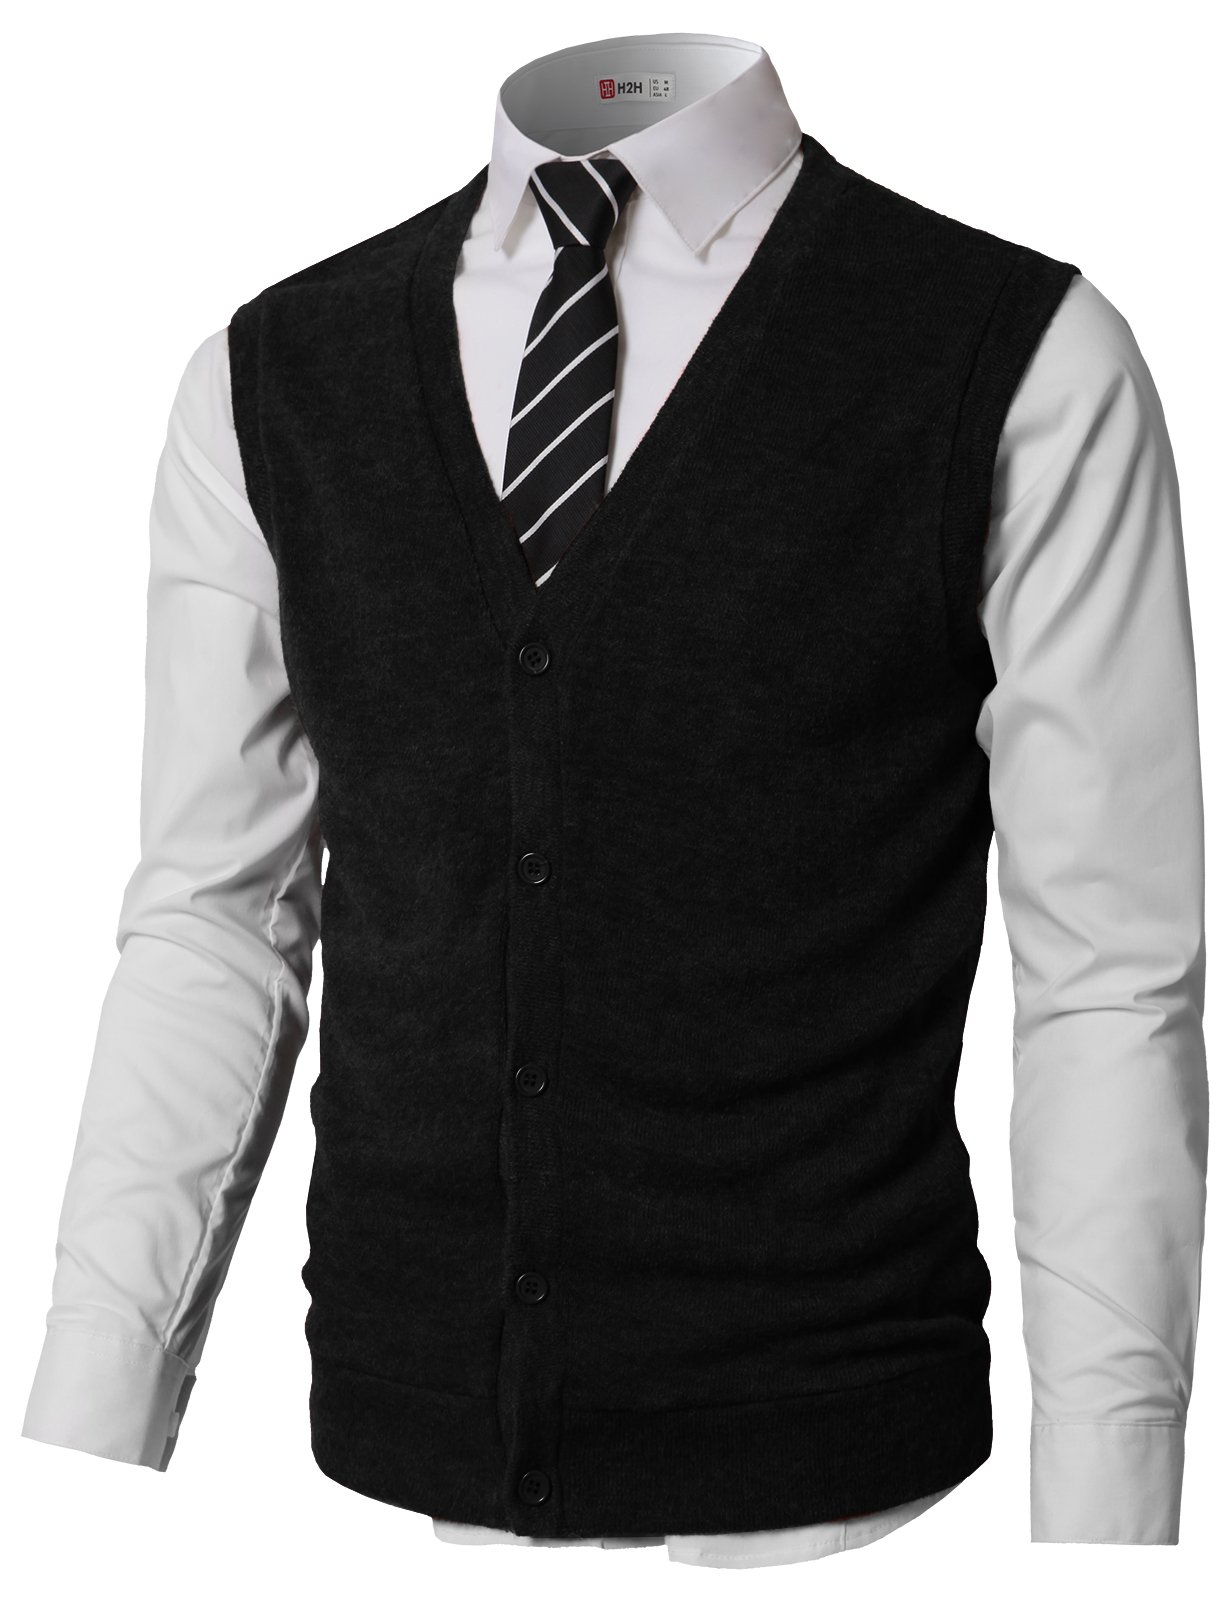 7eb881c7b9b875 Galleon - H2H Men s V-Neck Argyle Pattern Button Down Sweater Vest Cardigan  Black US 3XL Asia 4XL (CMOV046)